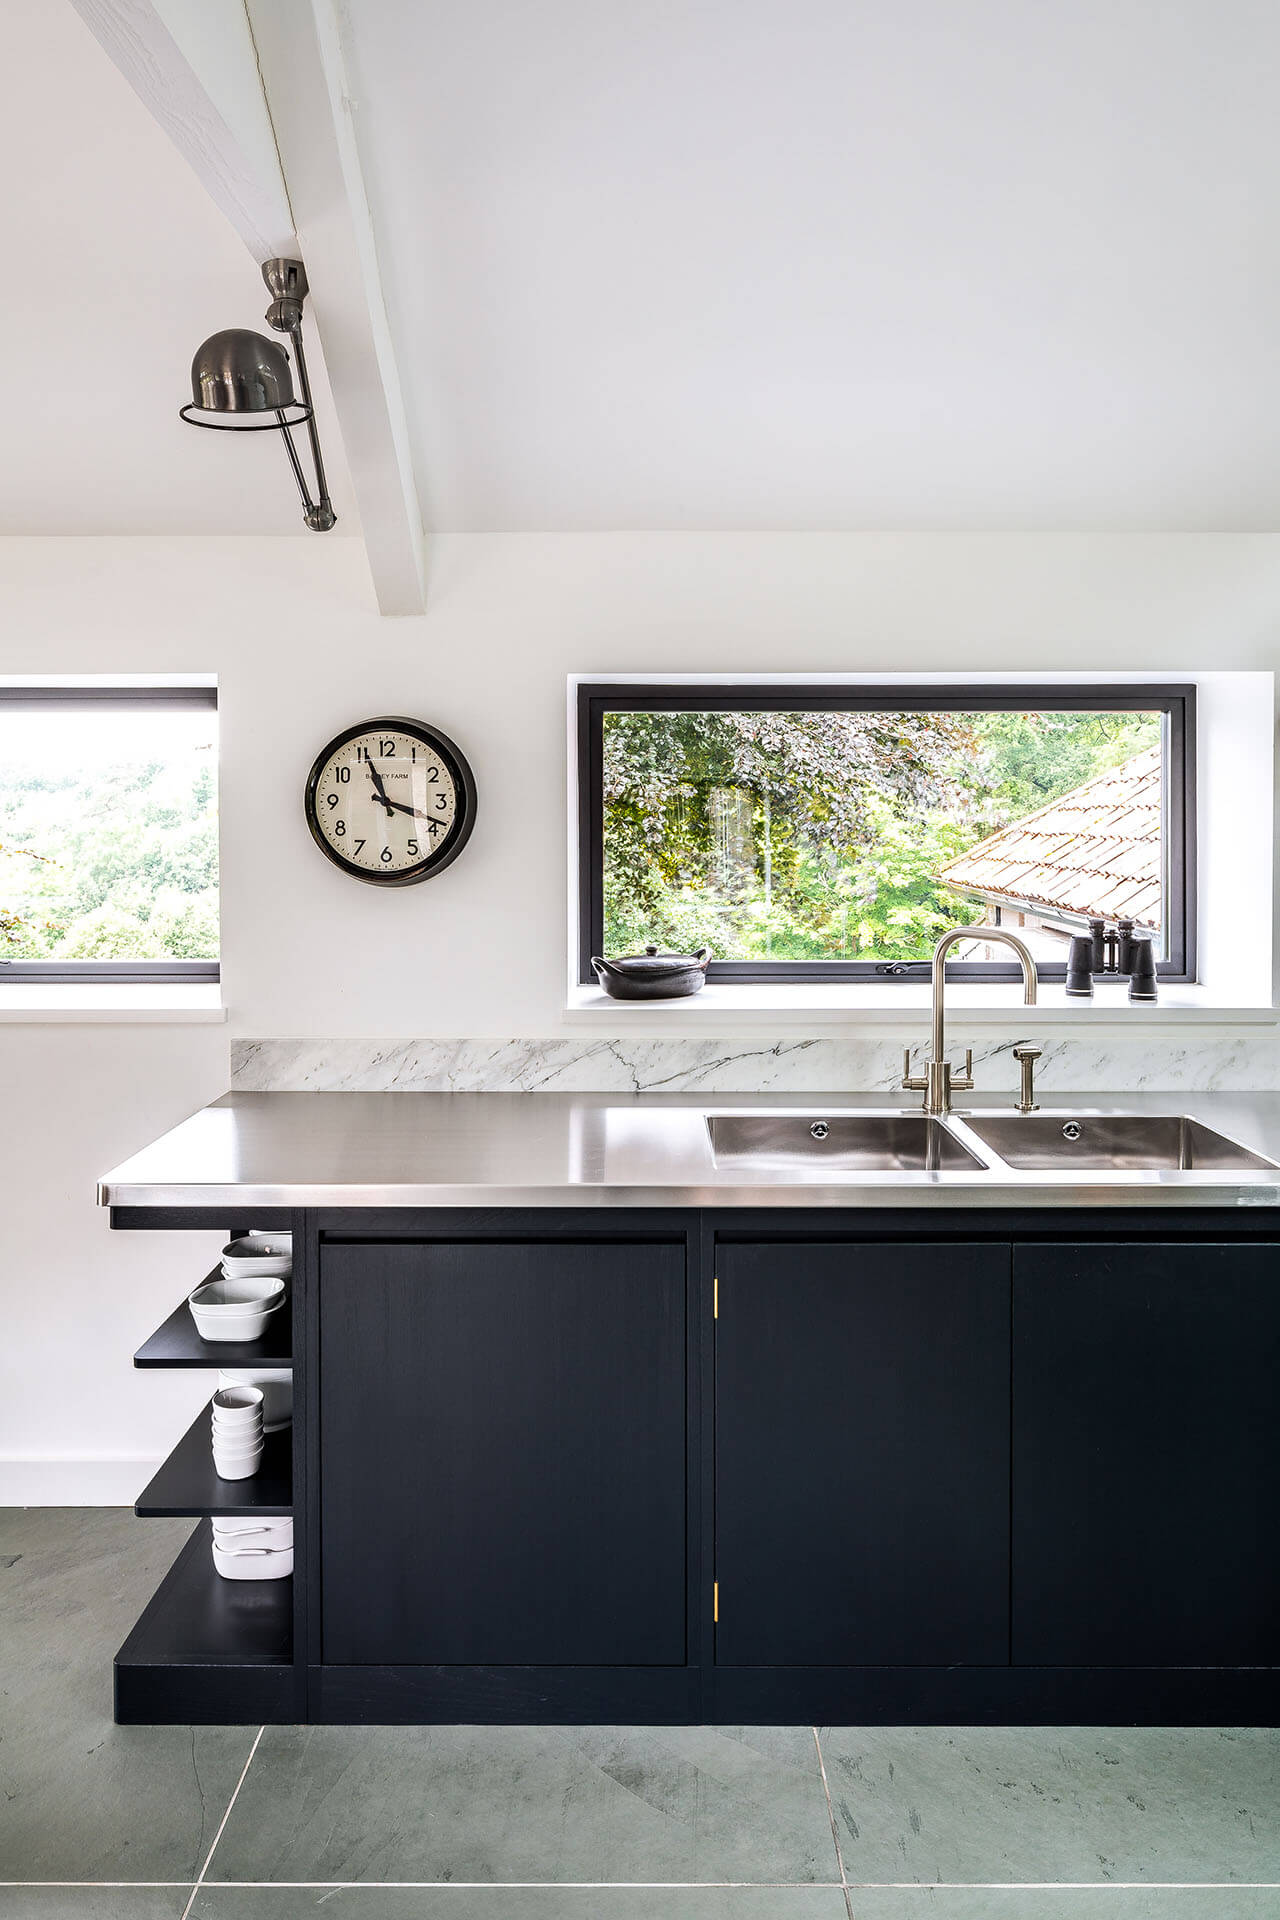 Steel, Marble, Reclaimed Wood Kitchen with stainless steel worktop and welded in stainless steel sink